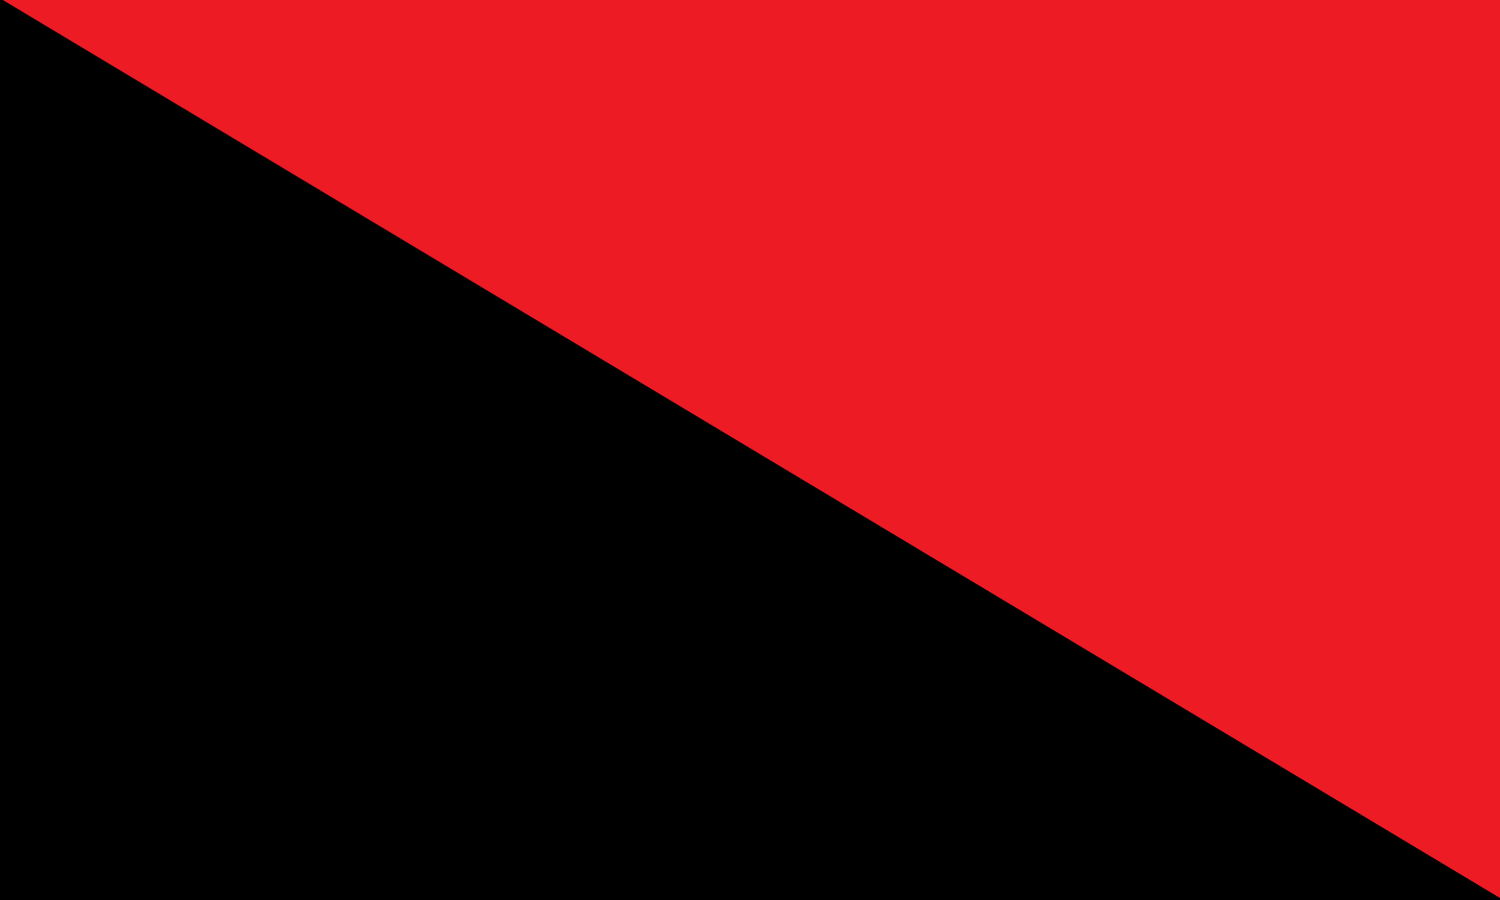 Black And Red >> Red And Black Colona Rsd7 Org